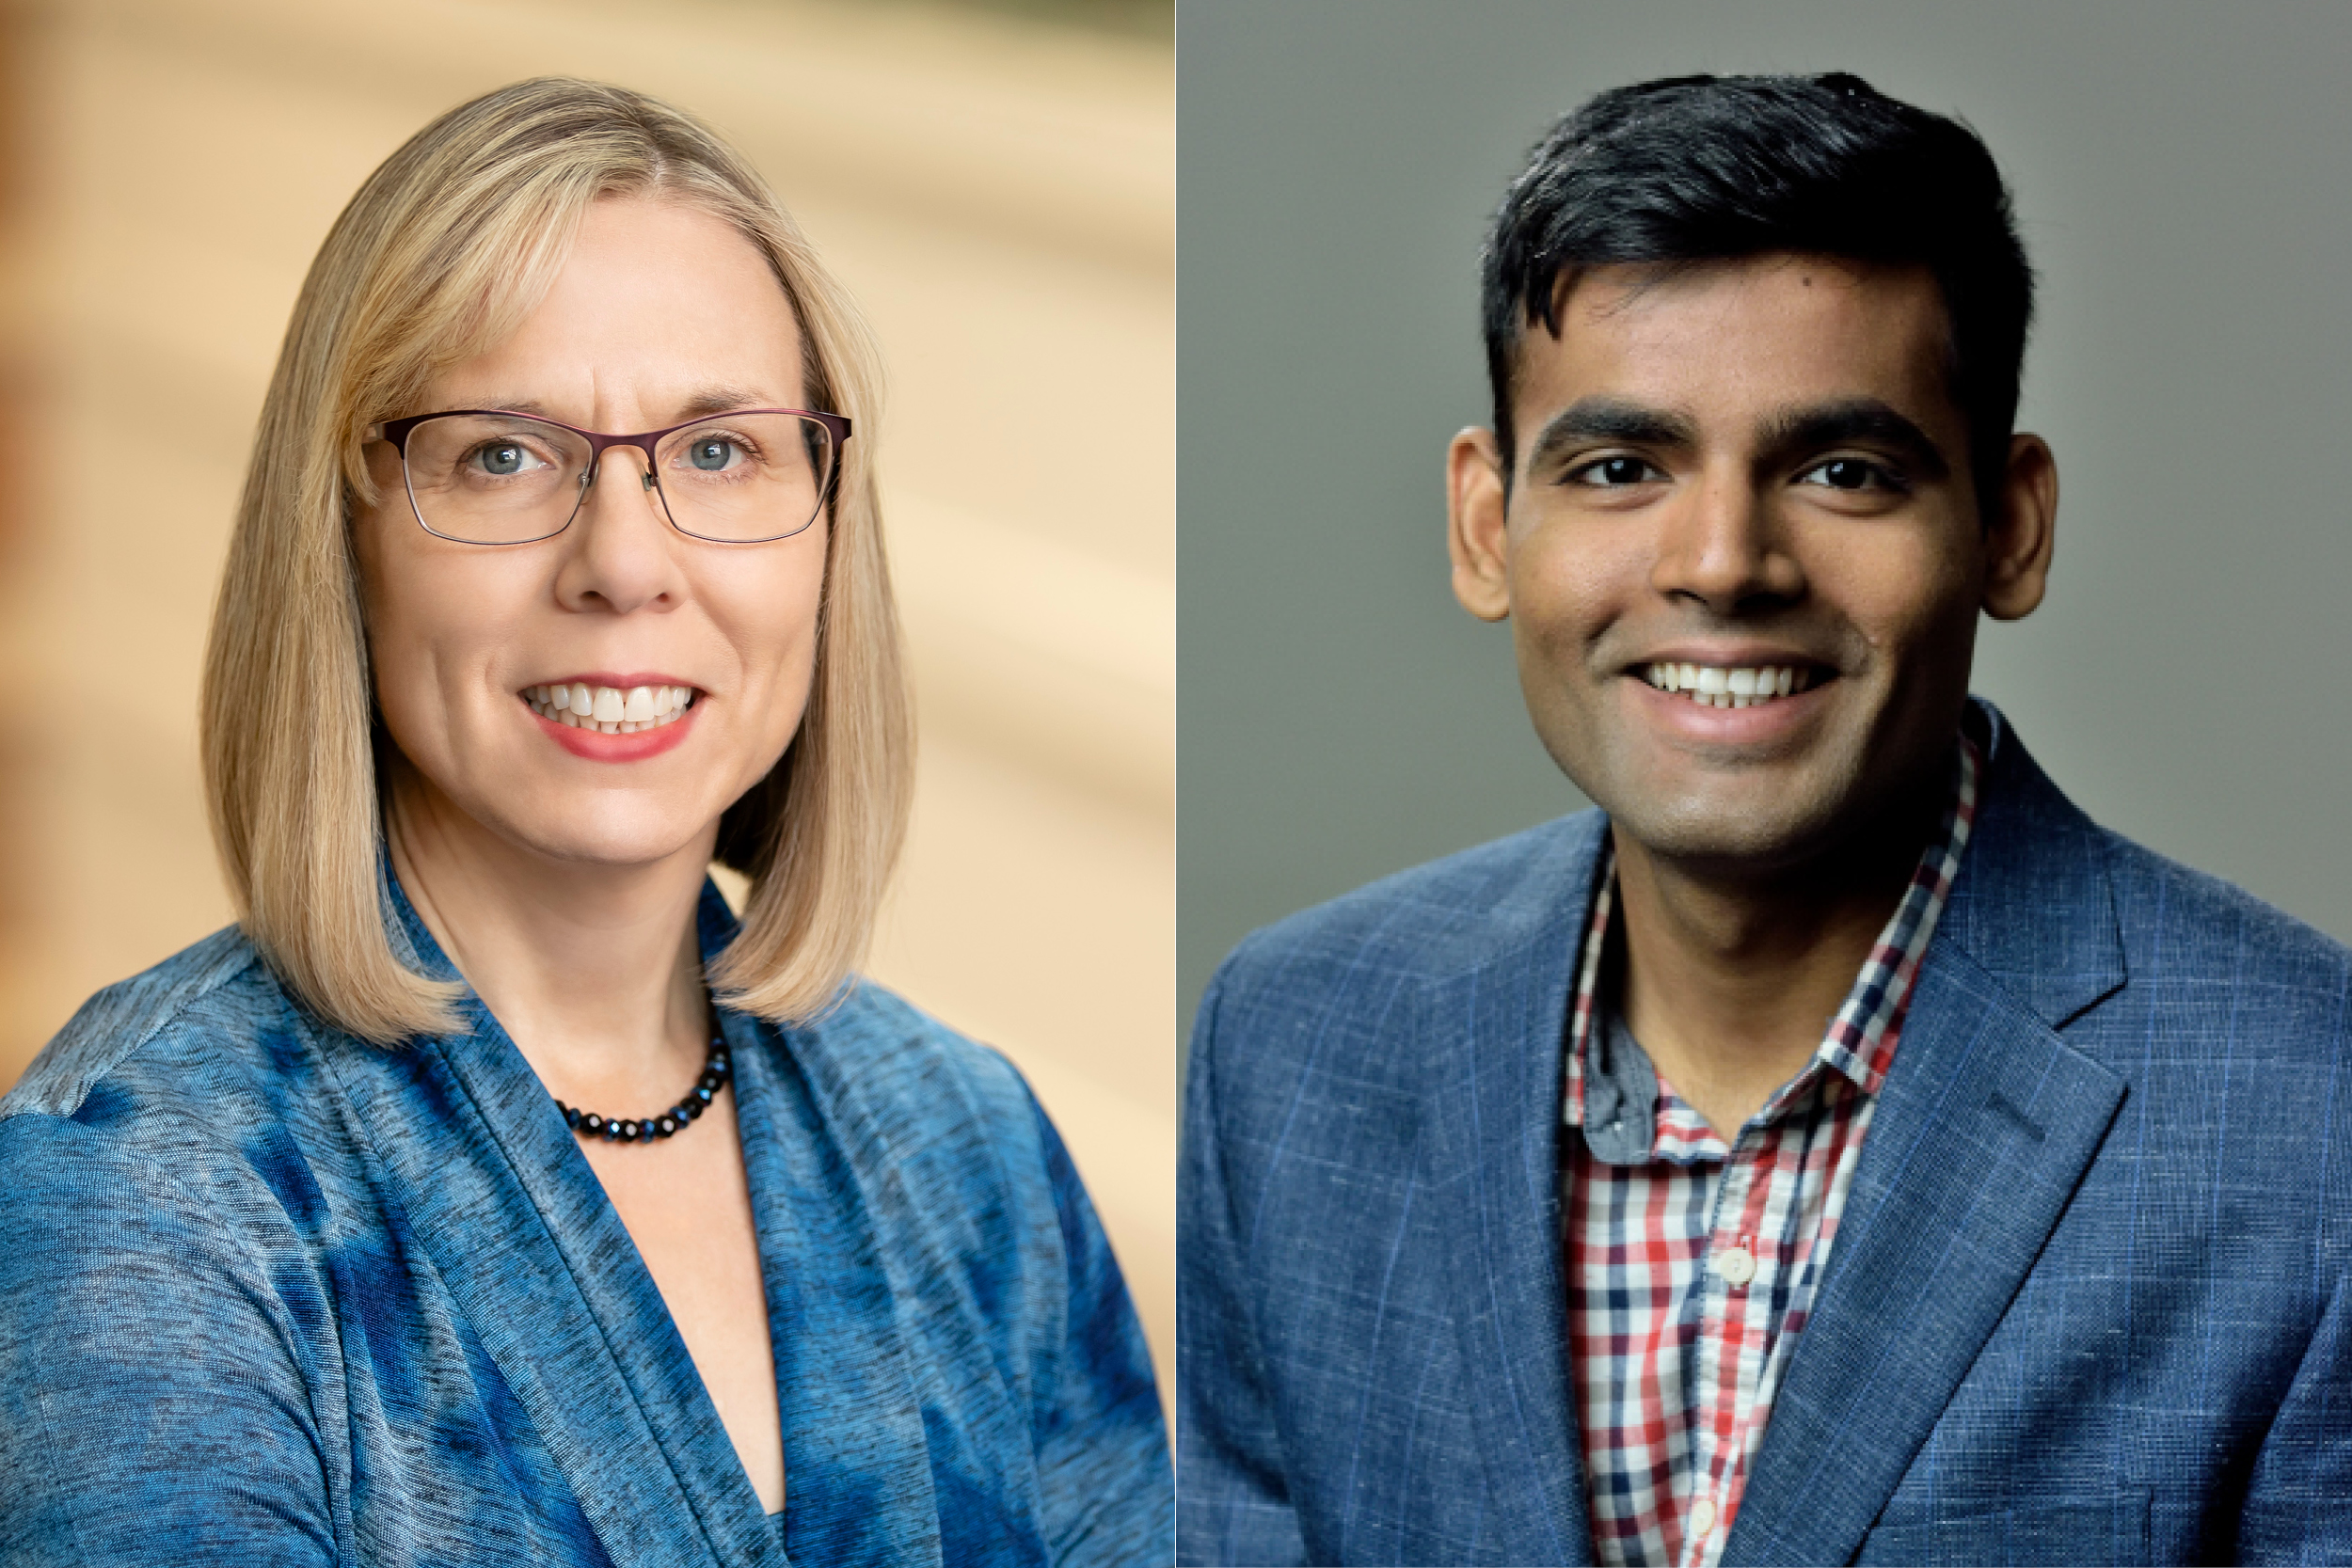 Portraits of Professor Nancy Sottos and Grad Student Dhawal Thakare